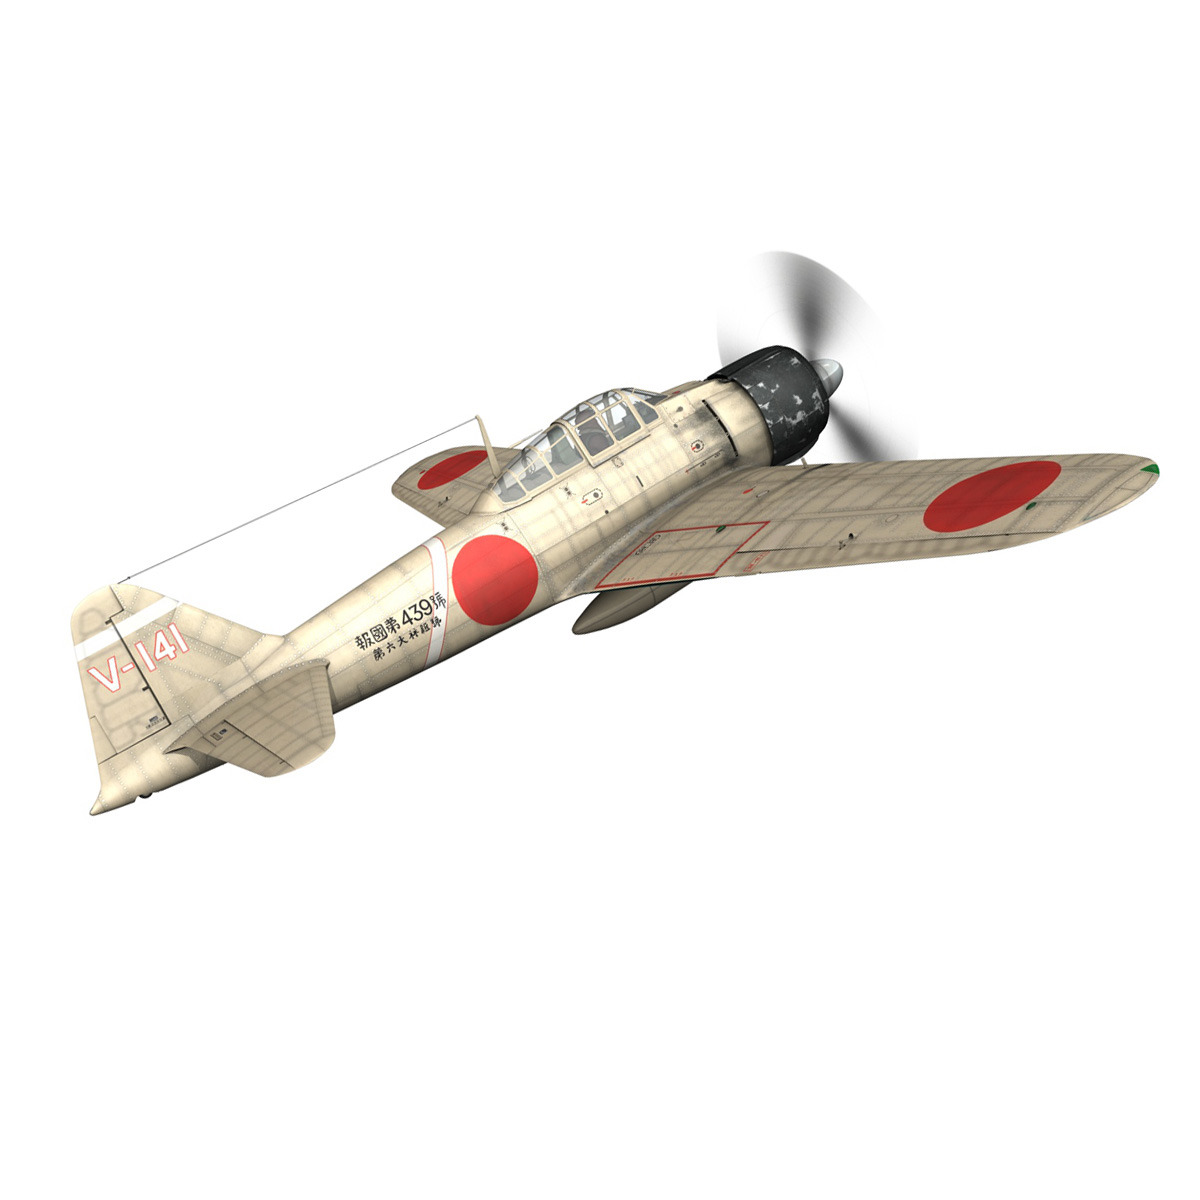 mitsubishi a6m2 zero – tainan air group 3d model fbx lwo obj 272729